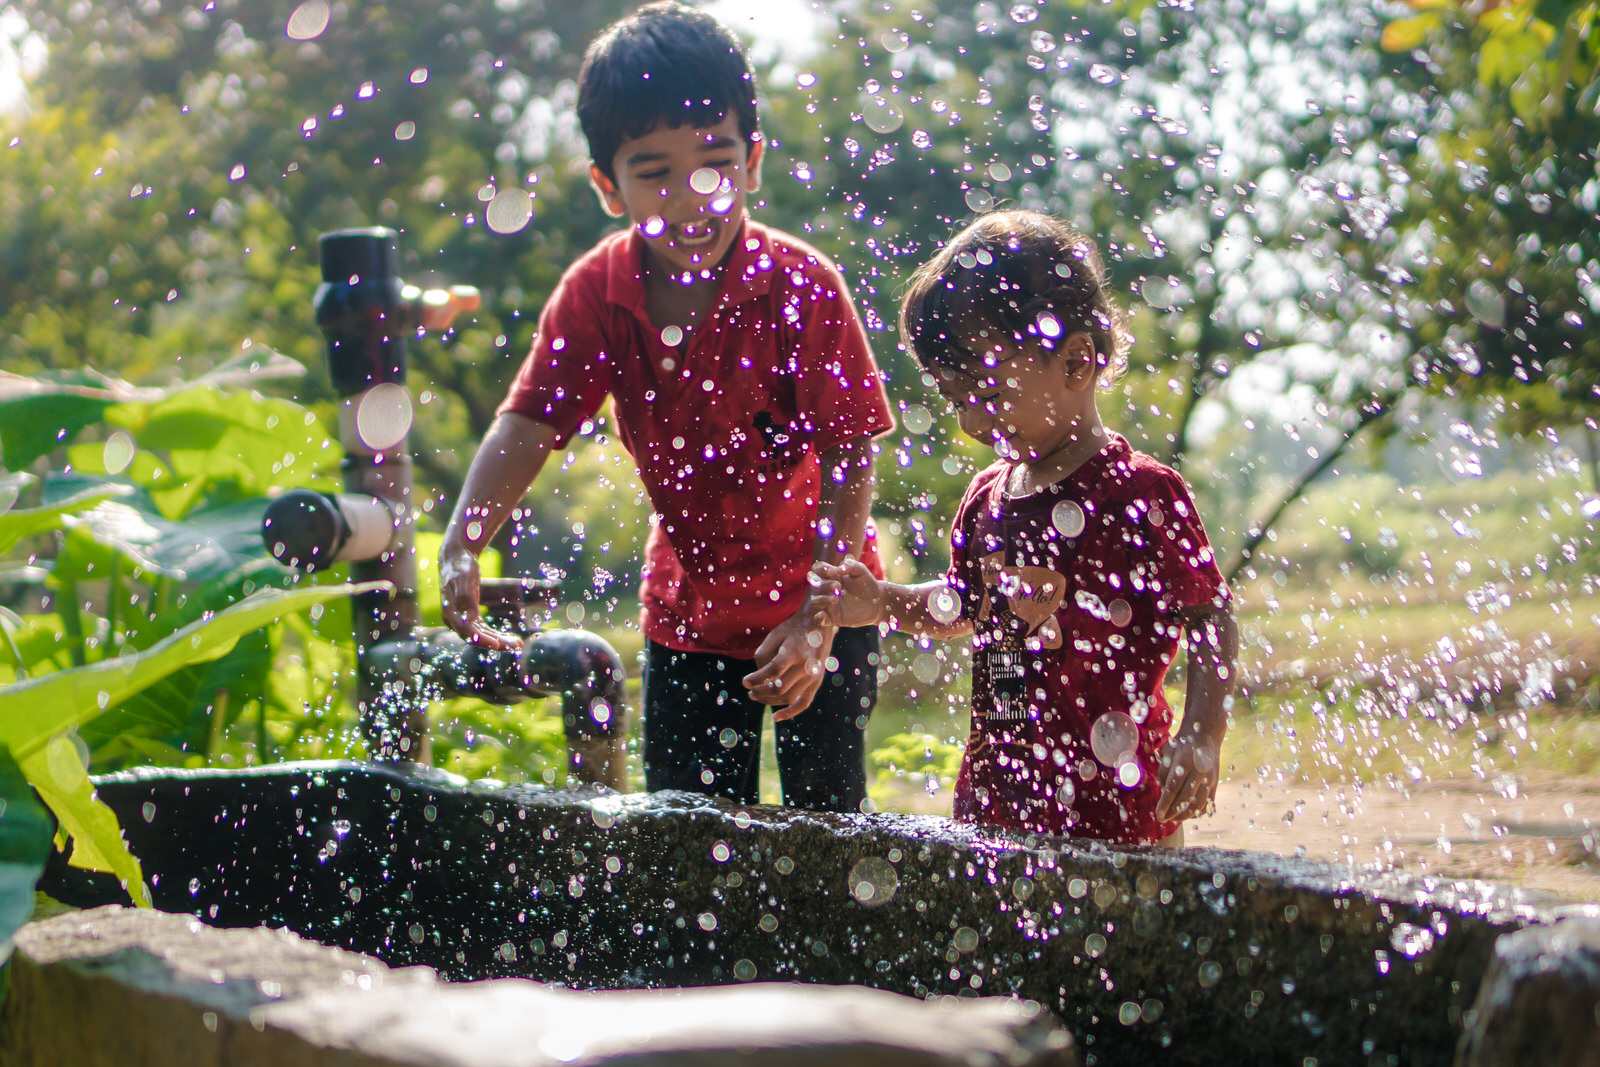 23122017-Boys-Playing-Water-Tank-217.jpg